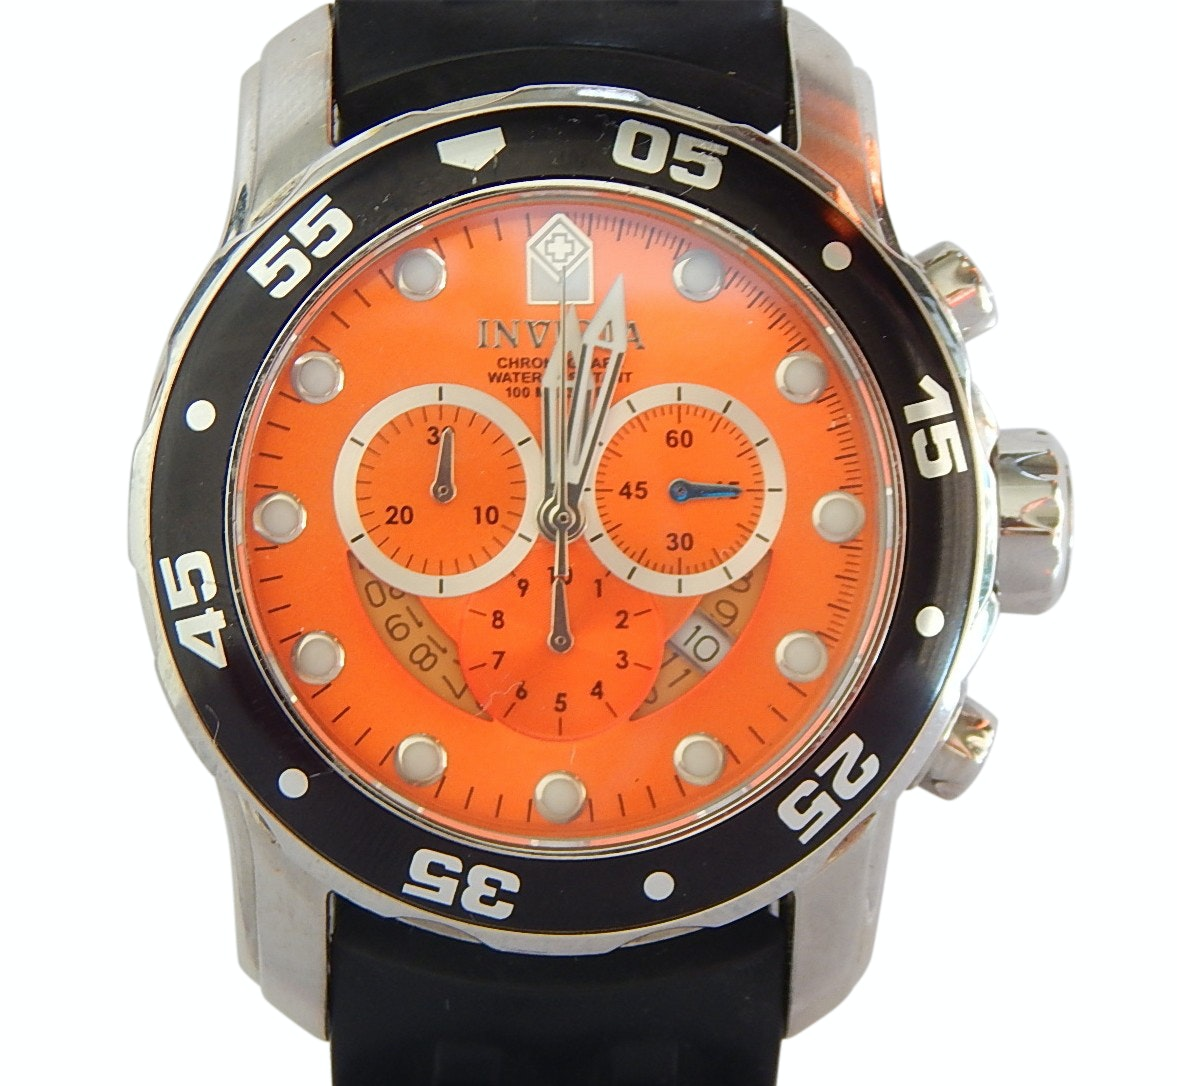 Invicta Pro Diver Model 6980 Silver and Black Wristwatch with Orange Display